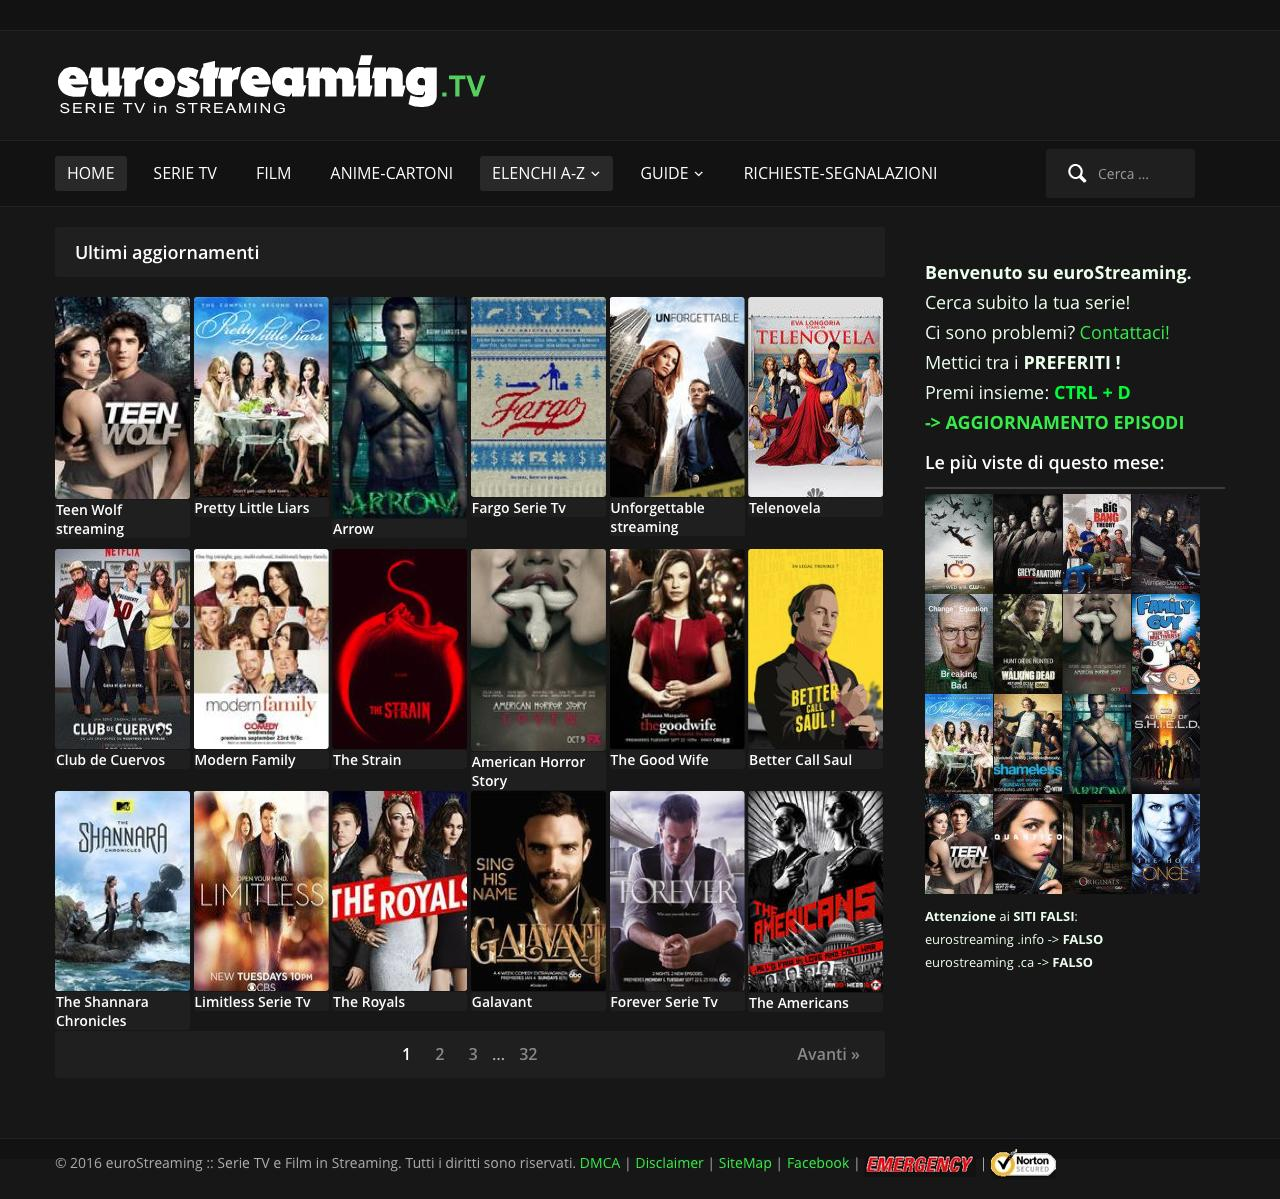 episodi da eurostreaming